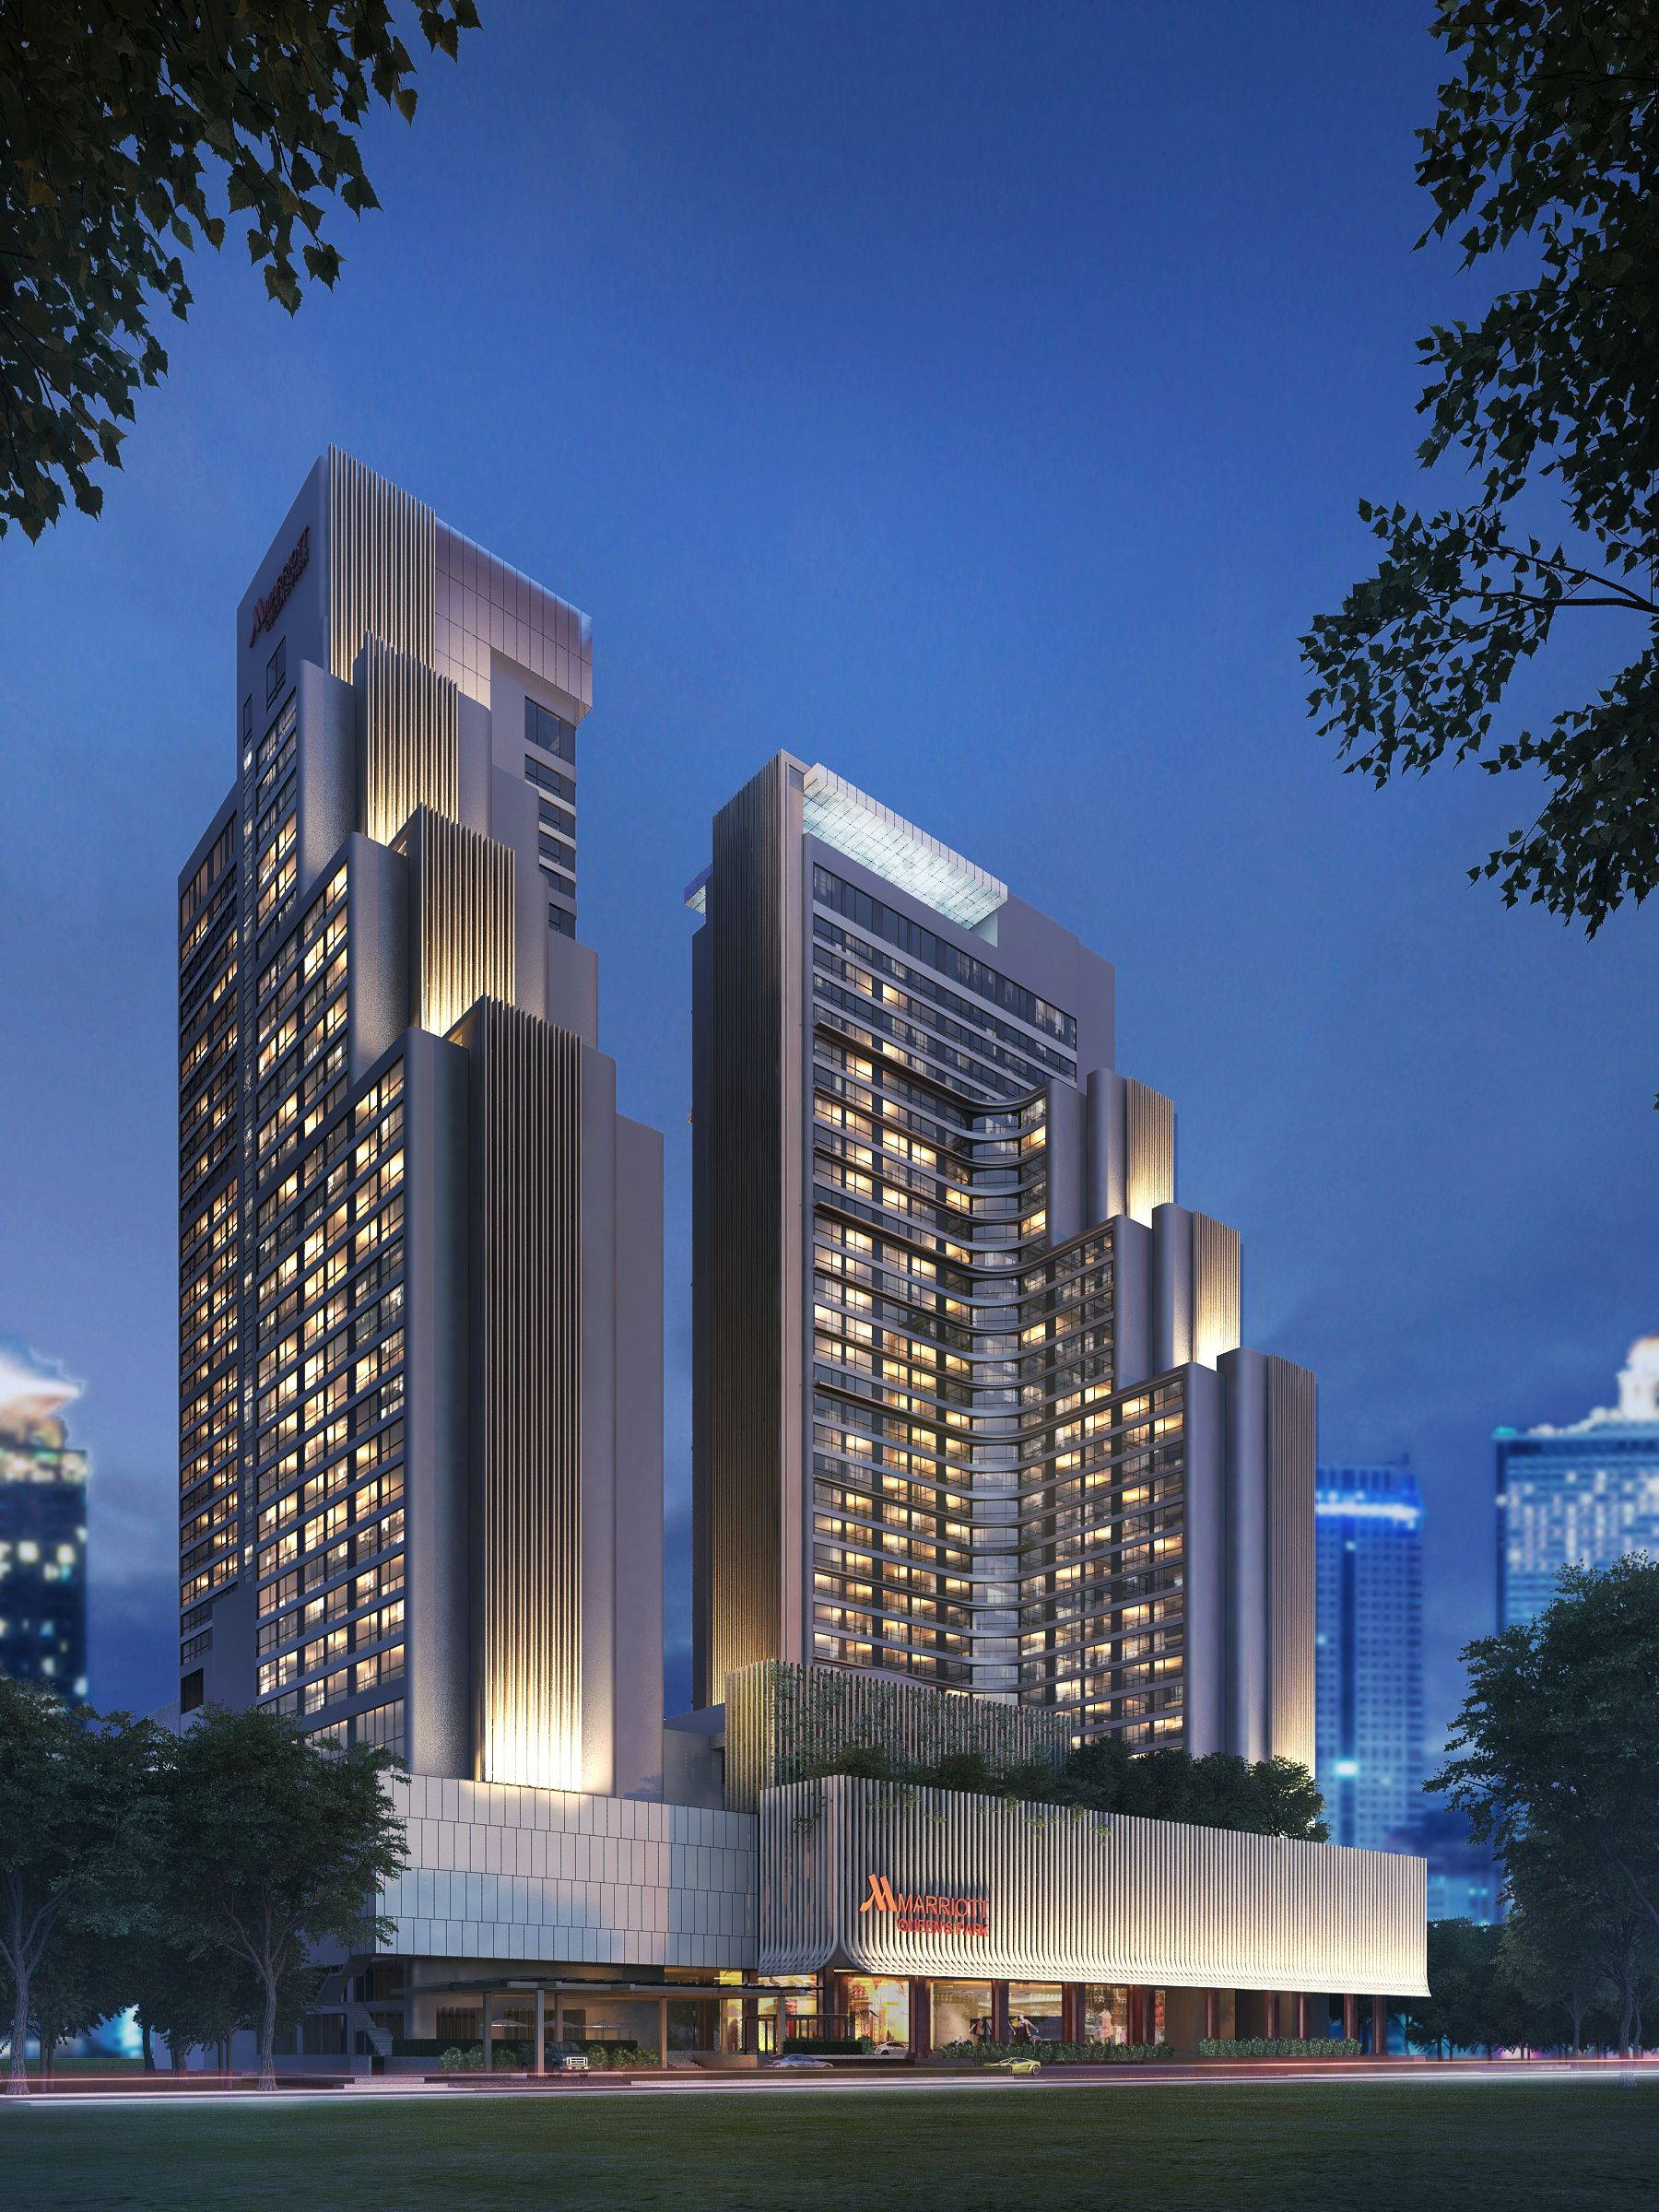 Modern Architecture Hotel peoject : bangkok marriott hotel, queen's park | m-architecture